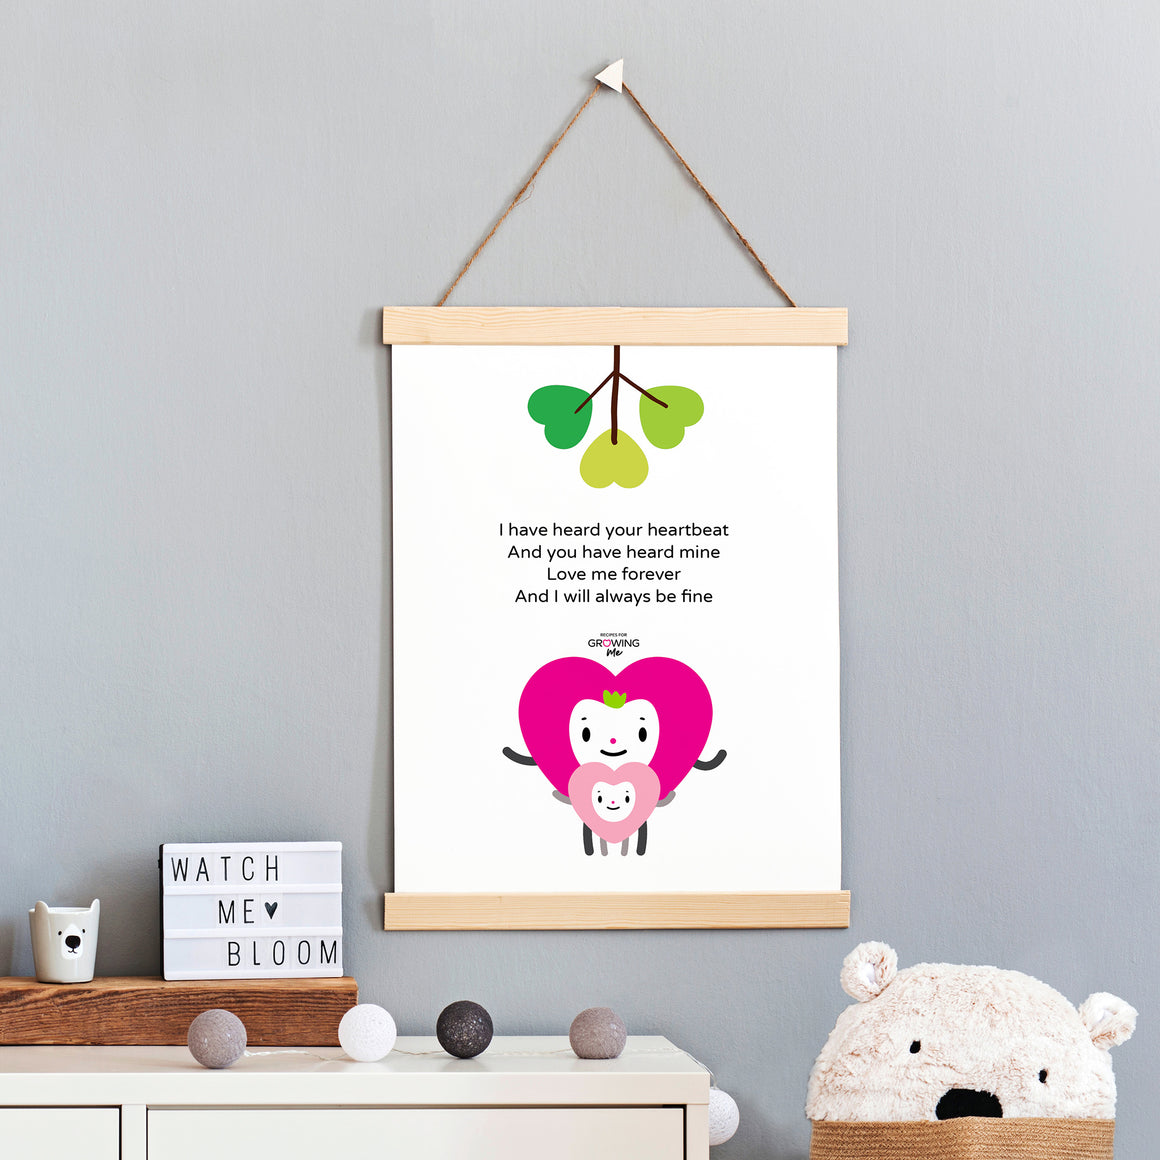 Rhyming baby poem, fuchsia and pink mom and baby hearts together with green heart tree character illustration on white background, black lettering, shown in a sample hanging wood and string frame on wall of baby's room, free digital download DIY printable